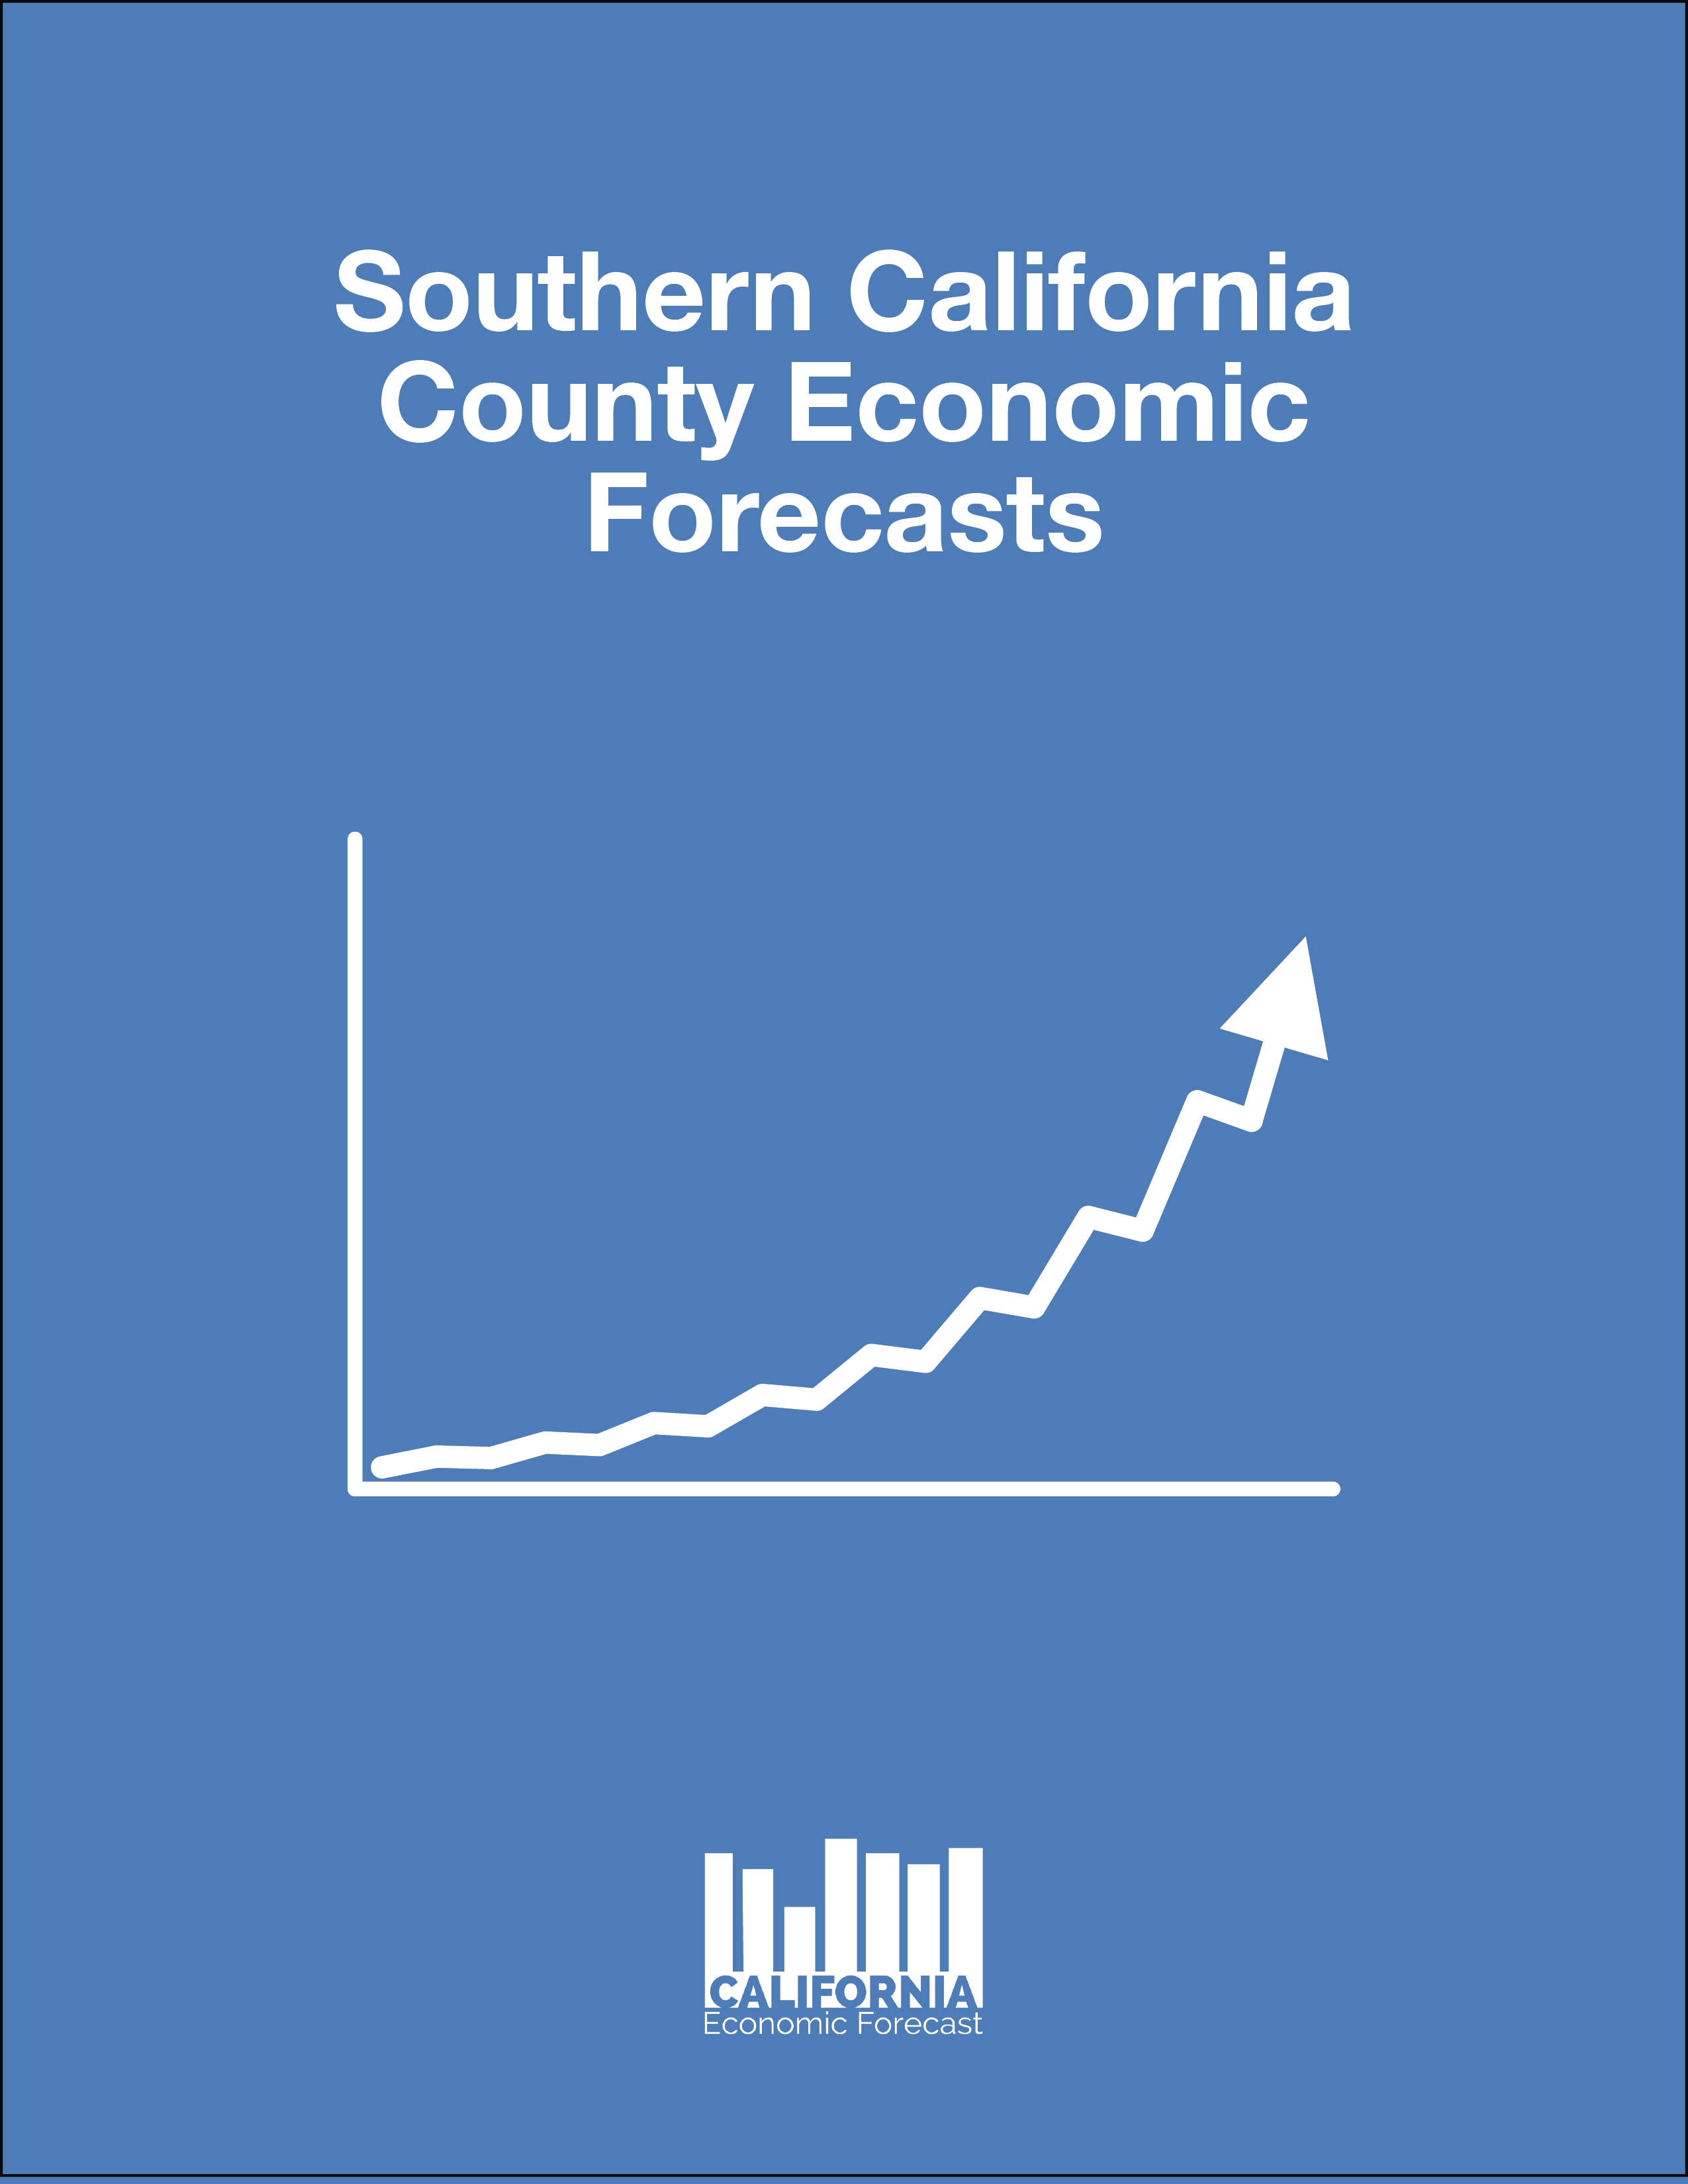 Southern California Forecasts